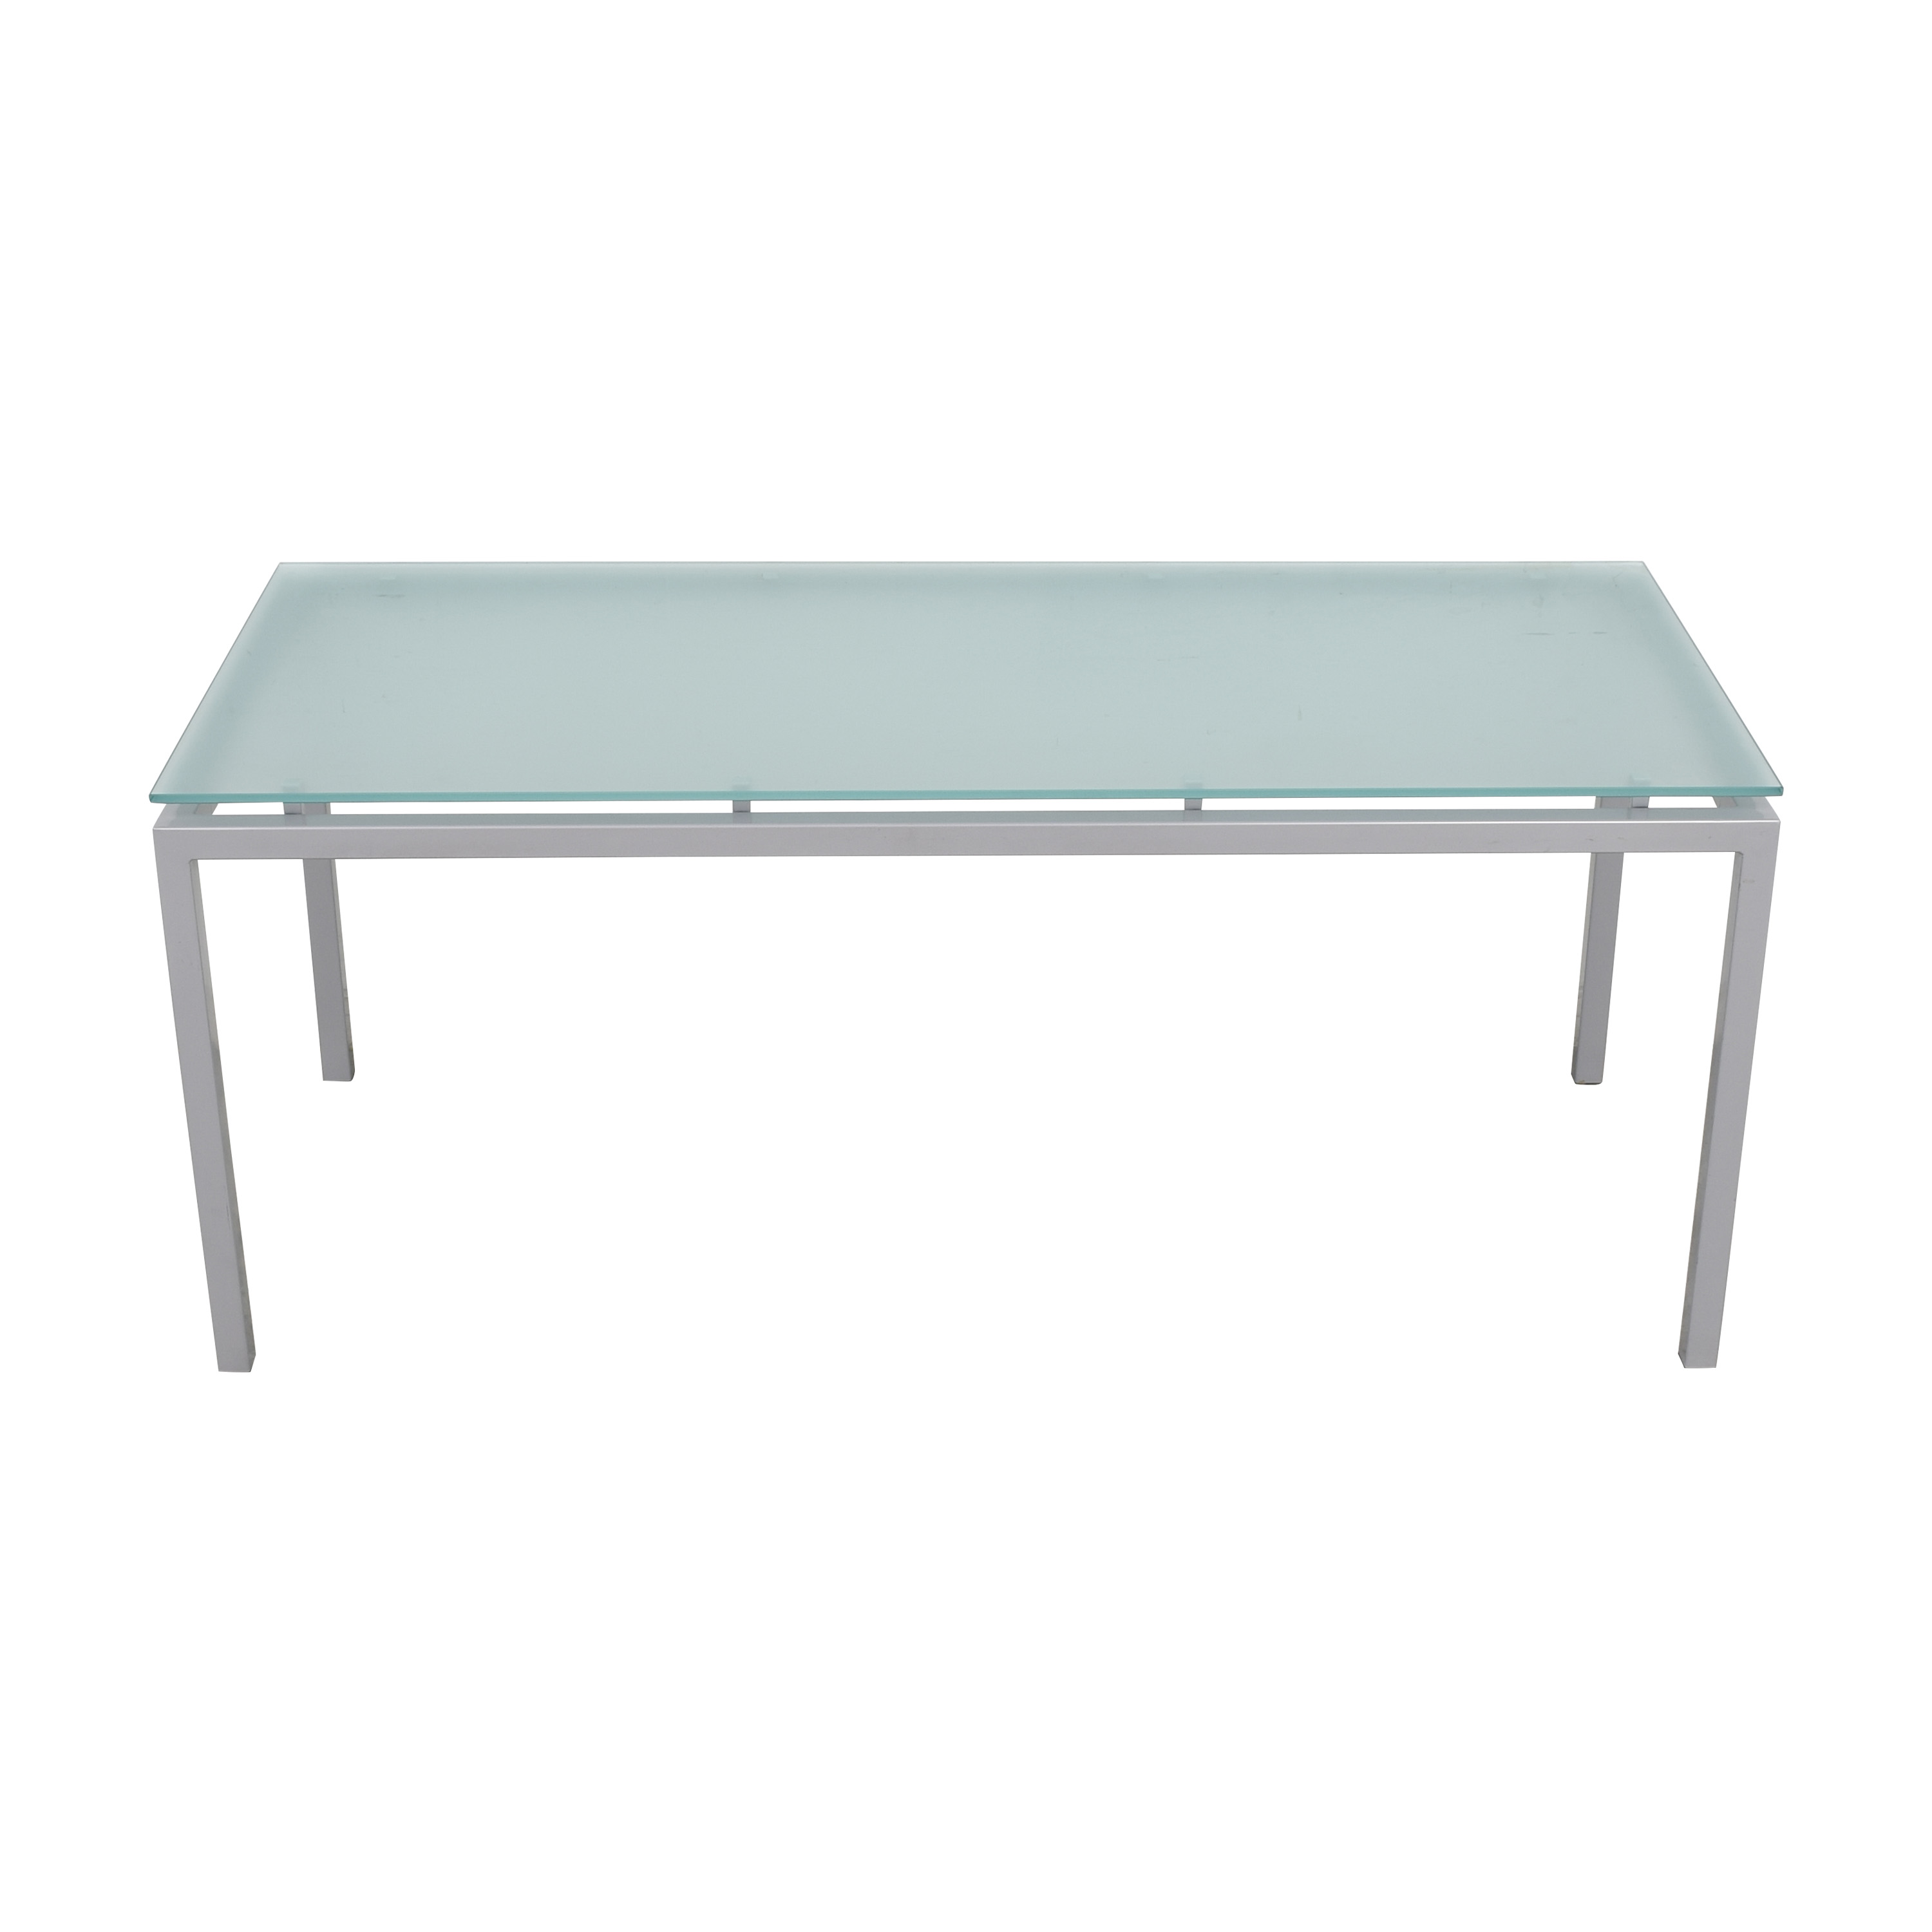 buy Room & Board Room & Board Dining Table with Floating Frosted Surface online